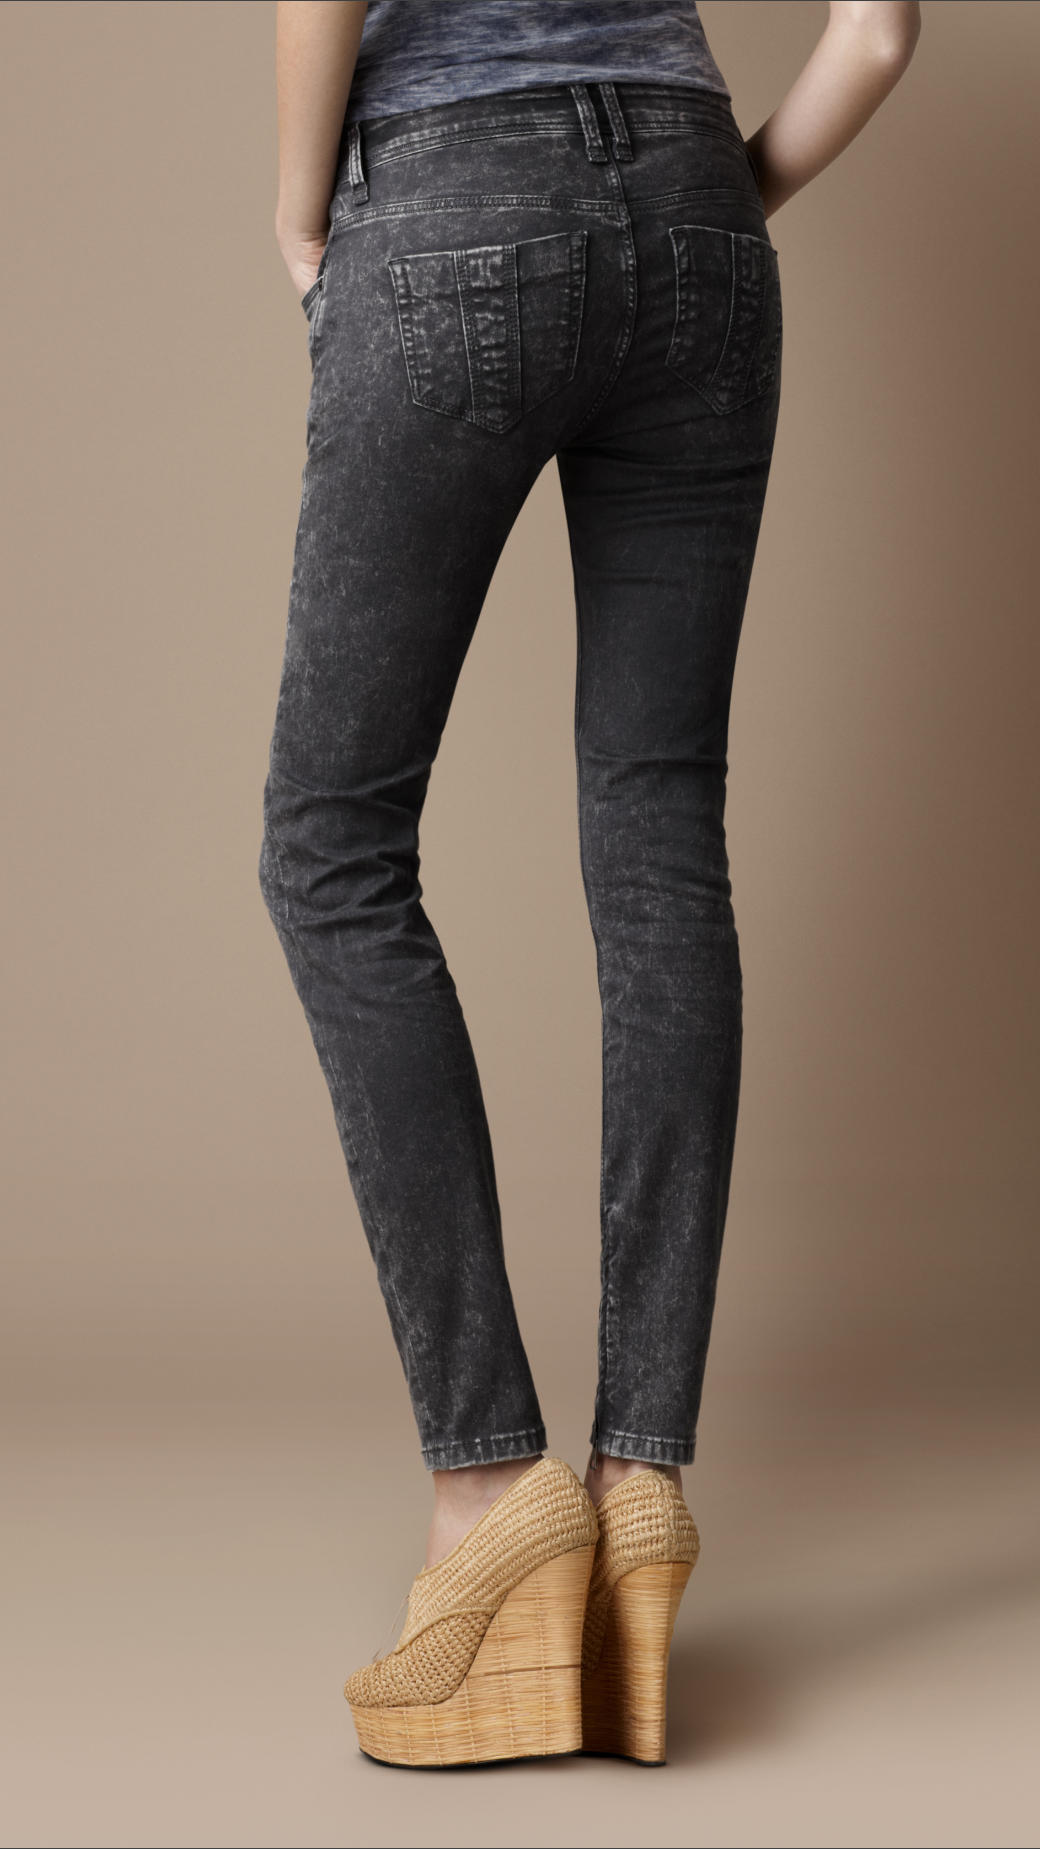 dd7fba0d4870 Burberry Brit Bayswater Grey Skinny Jeans in Gray - Lyst